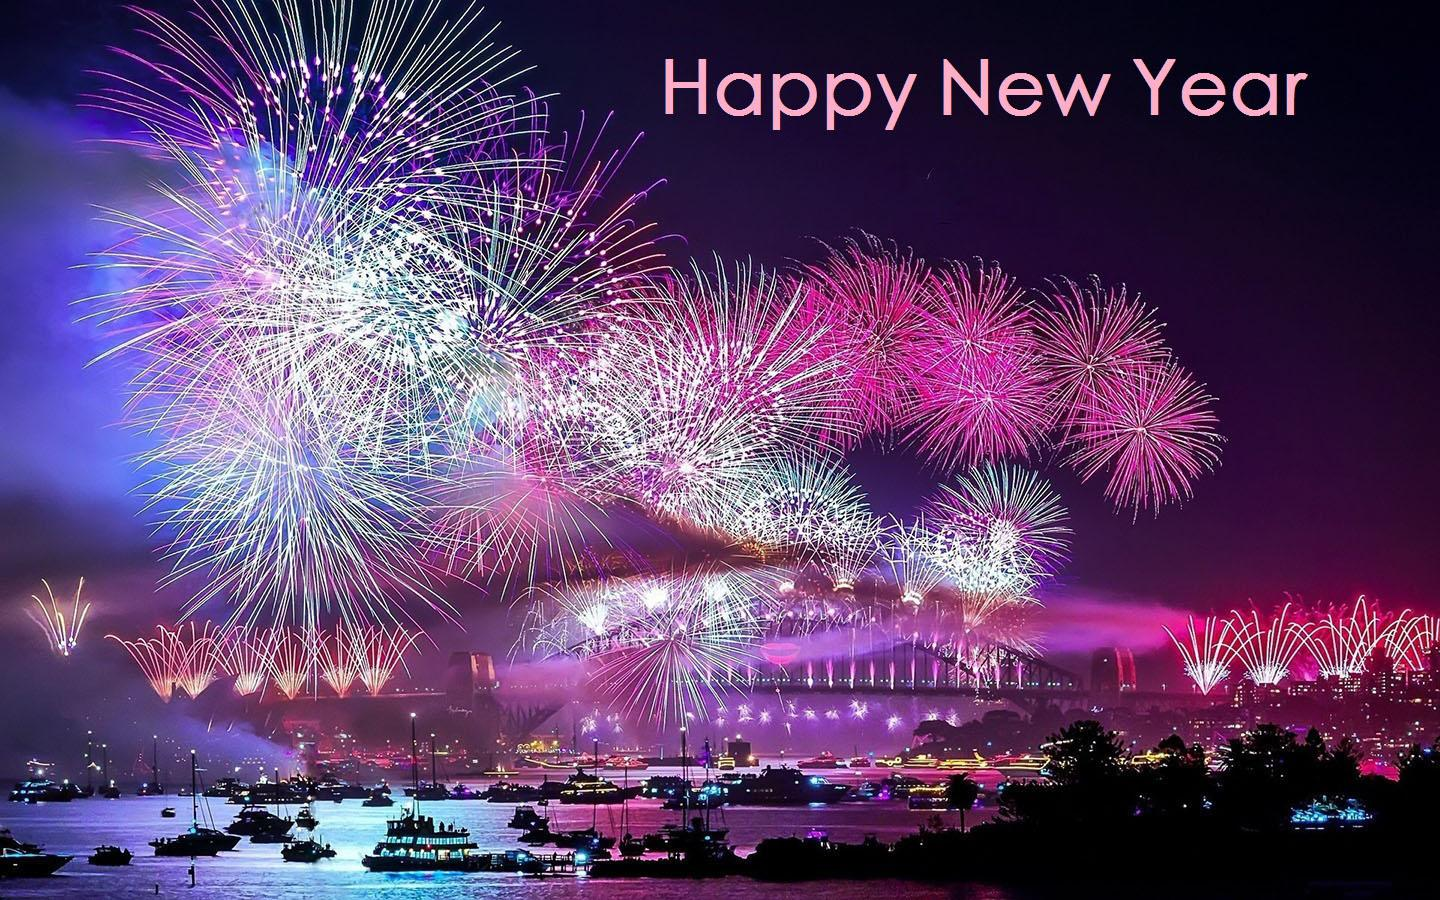 New Year Fireworks Wallpaper   Android Apps on Google Play 1440x900